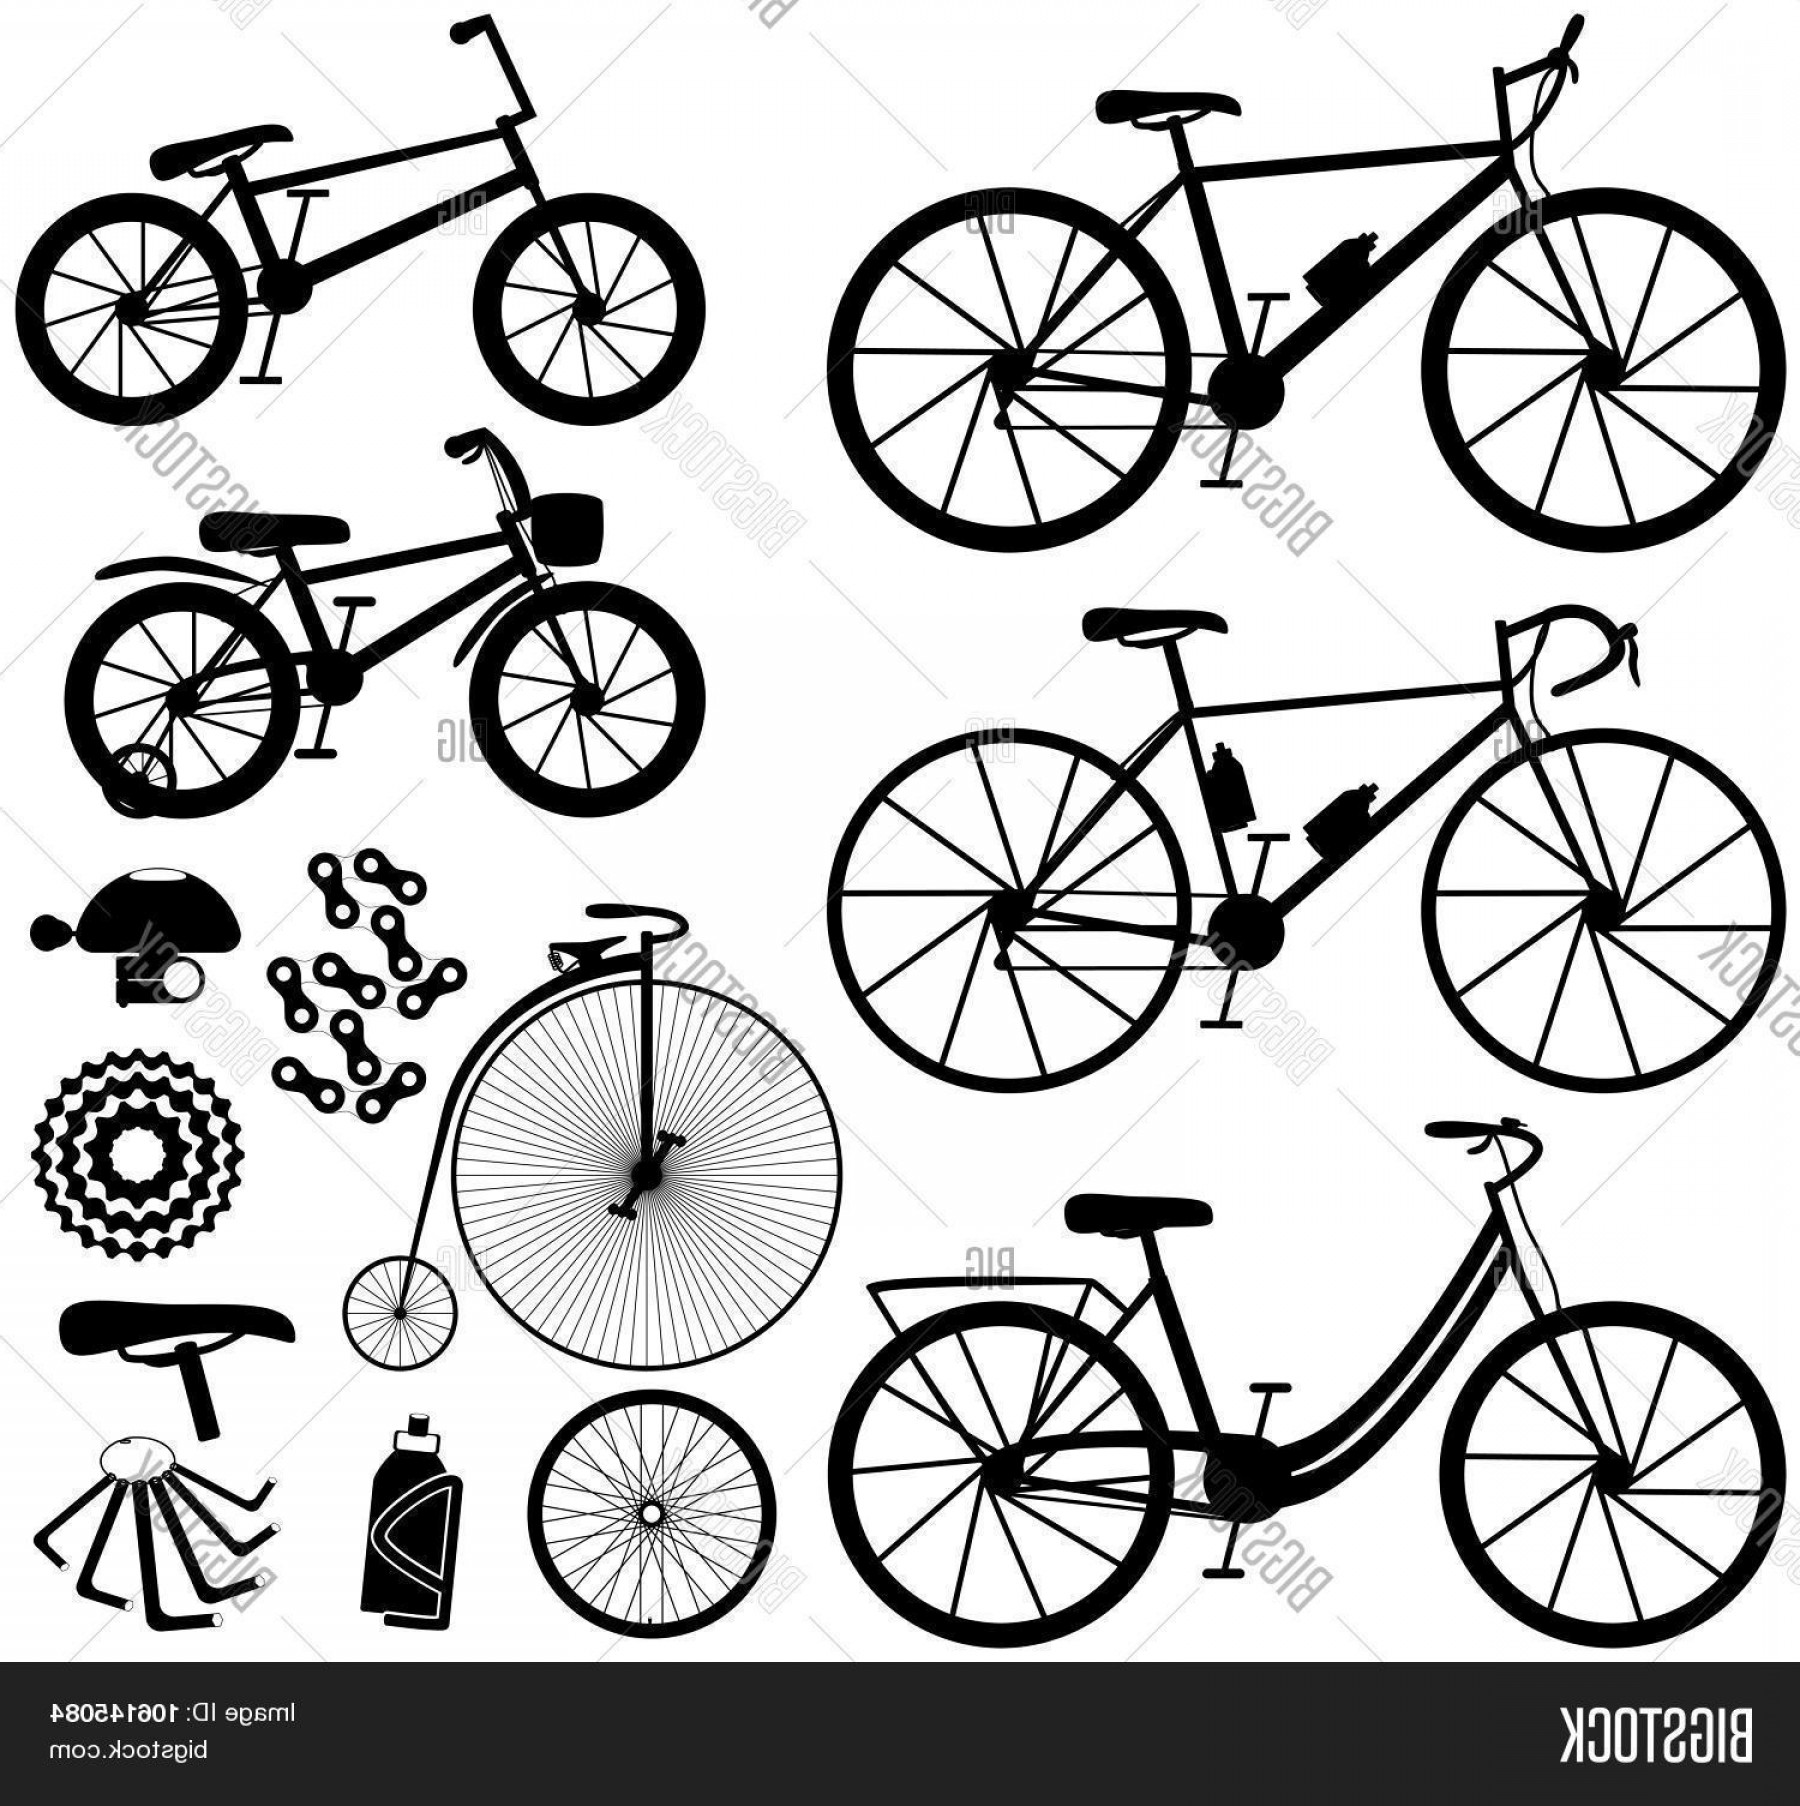 BMX Bike Tire Vector: Stock Vector Six Kinds Of Bicyclesa Mountain Or Cross Country Bikec Road Bikec City Bikec Bmx Bikec Kids Bike A